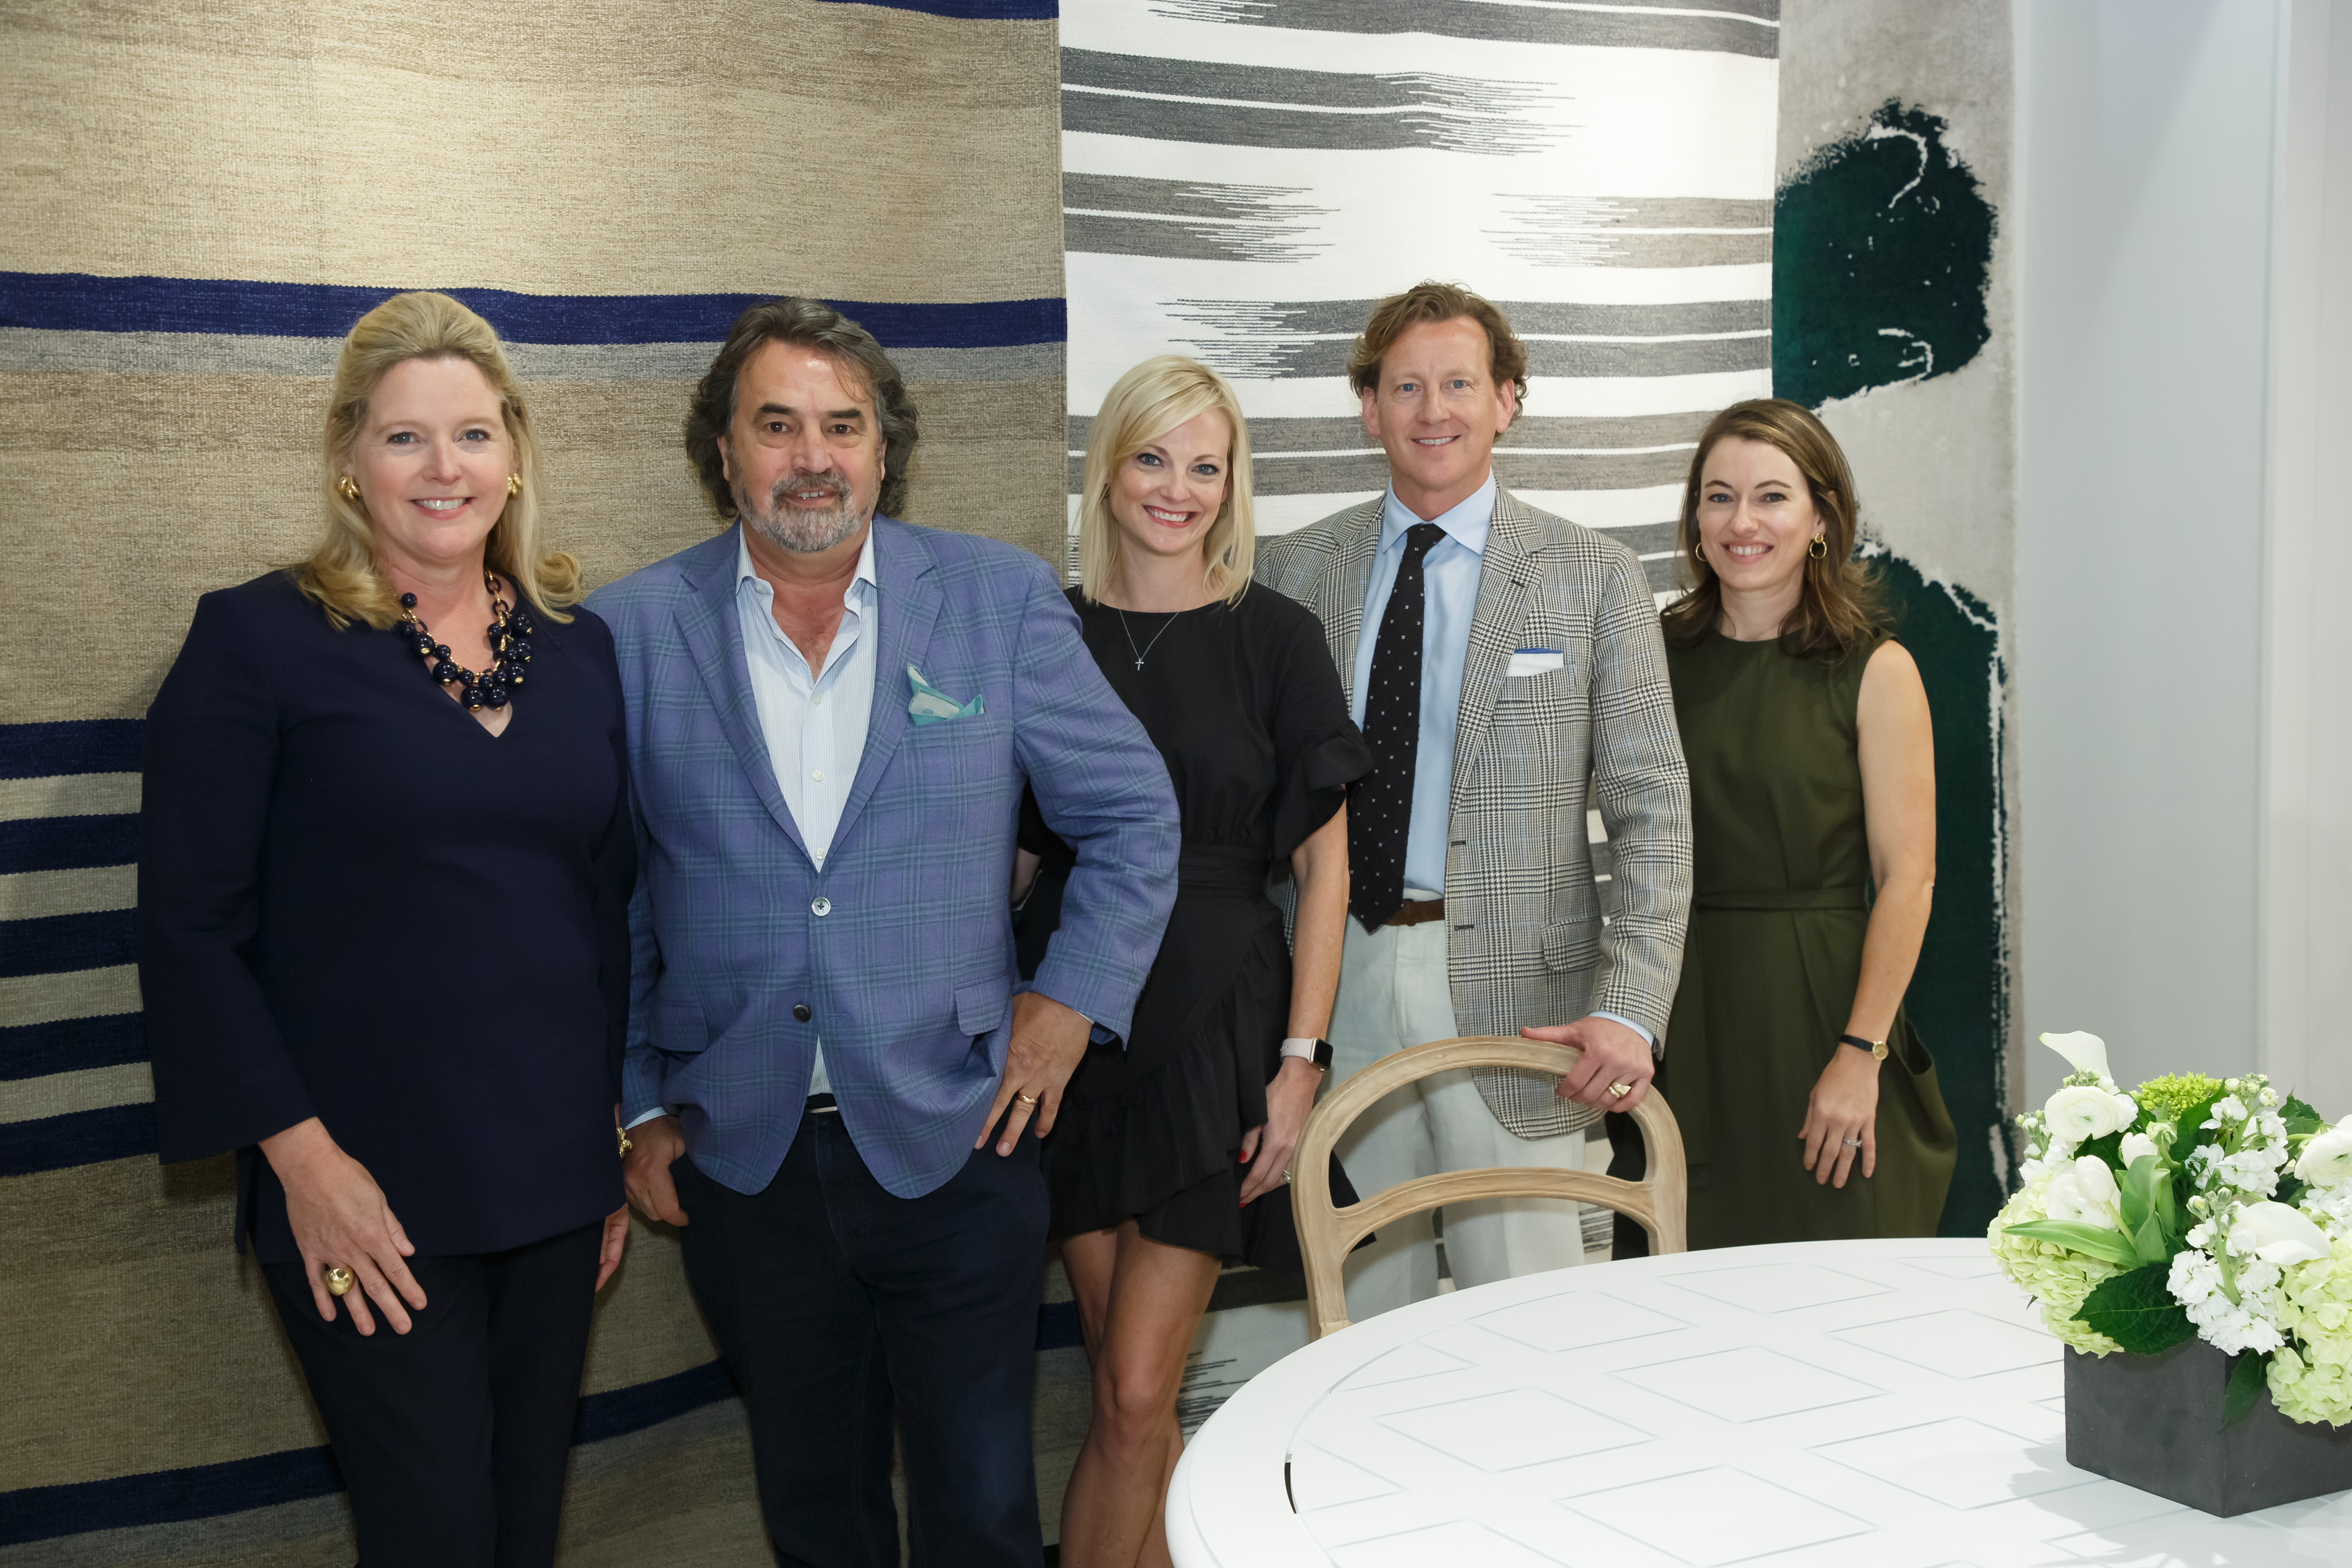 'Transportative Power of Design' panelists Meg Braff, Doug Hoerr, Stan Dixon and Steele Marcoux, with Katie Miner (center). The panel was held at Sutherland and Perennials.